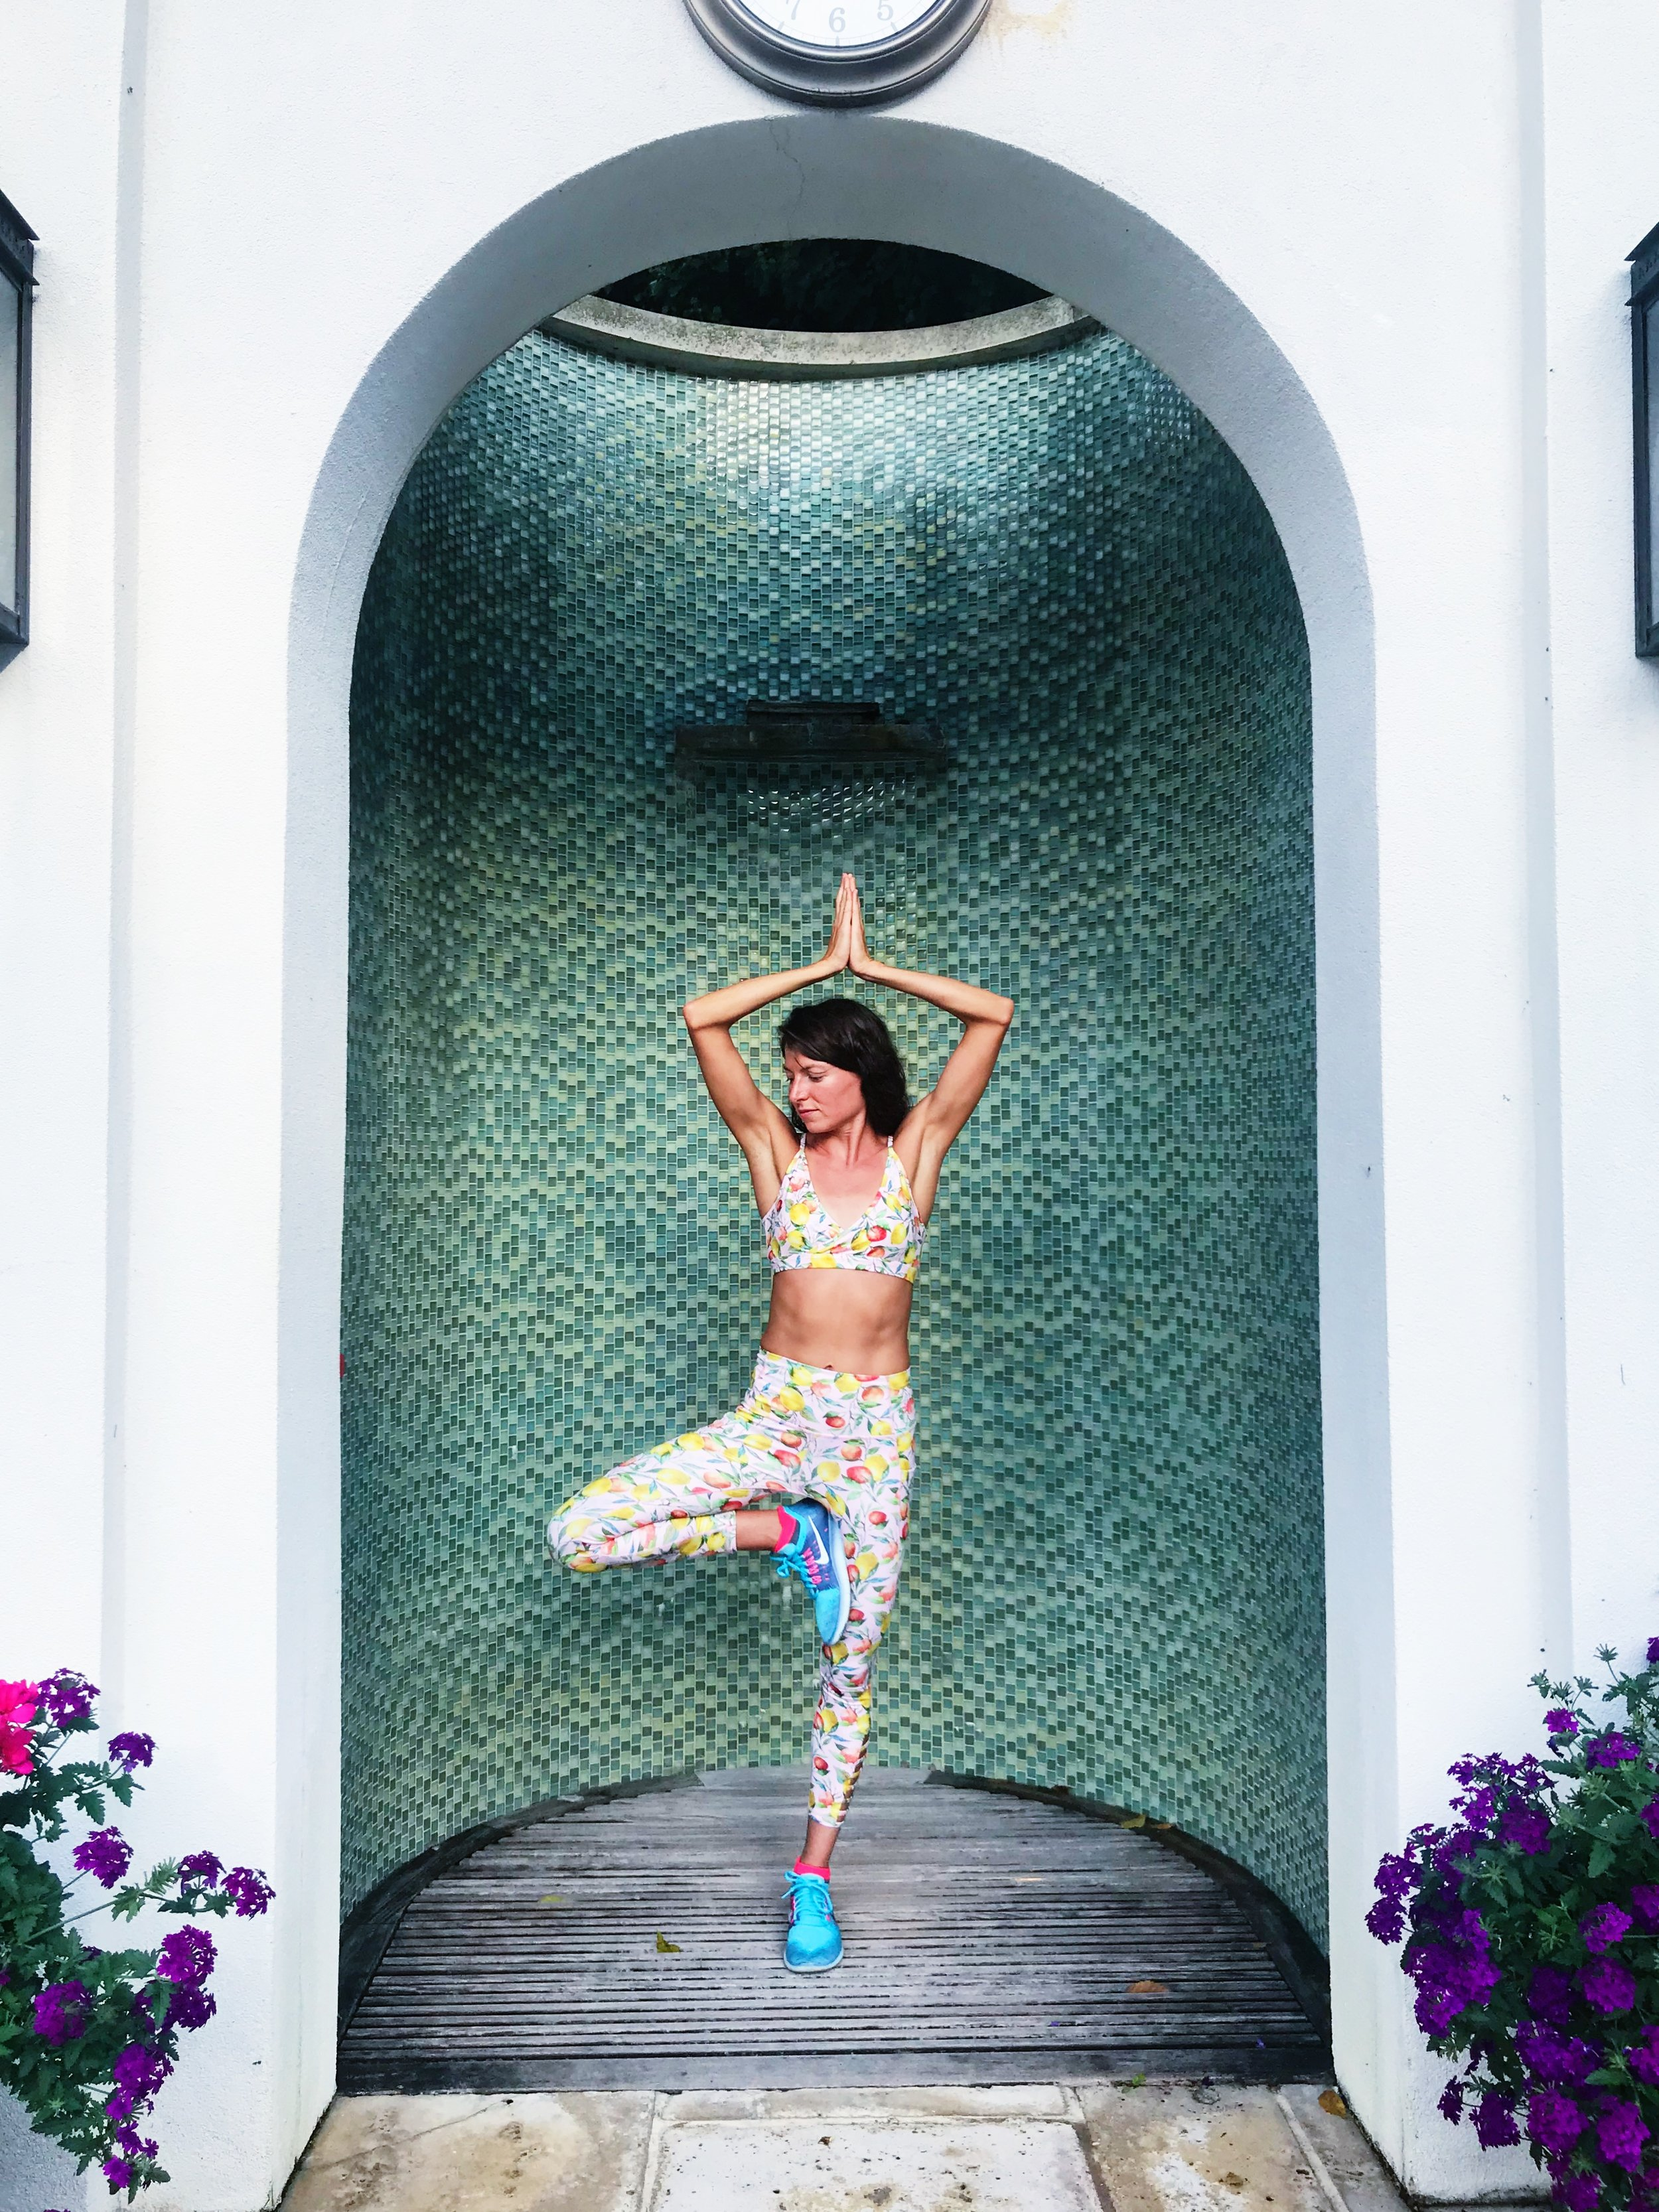 Another definite pro: I can do all the yoga I want and need in my own time.